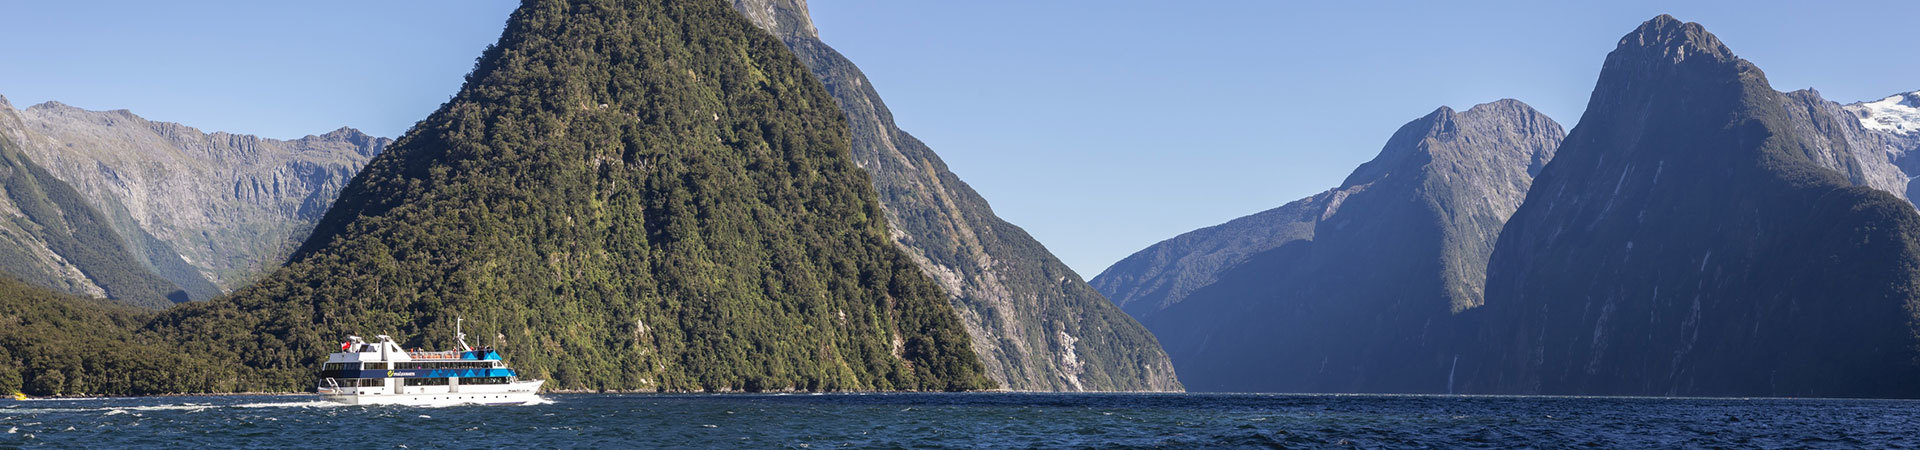 Thrifty Tours New Zealand